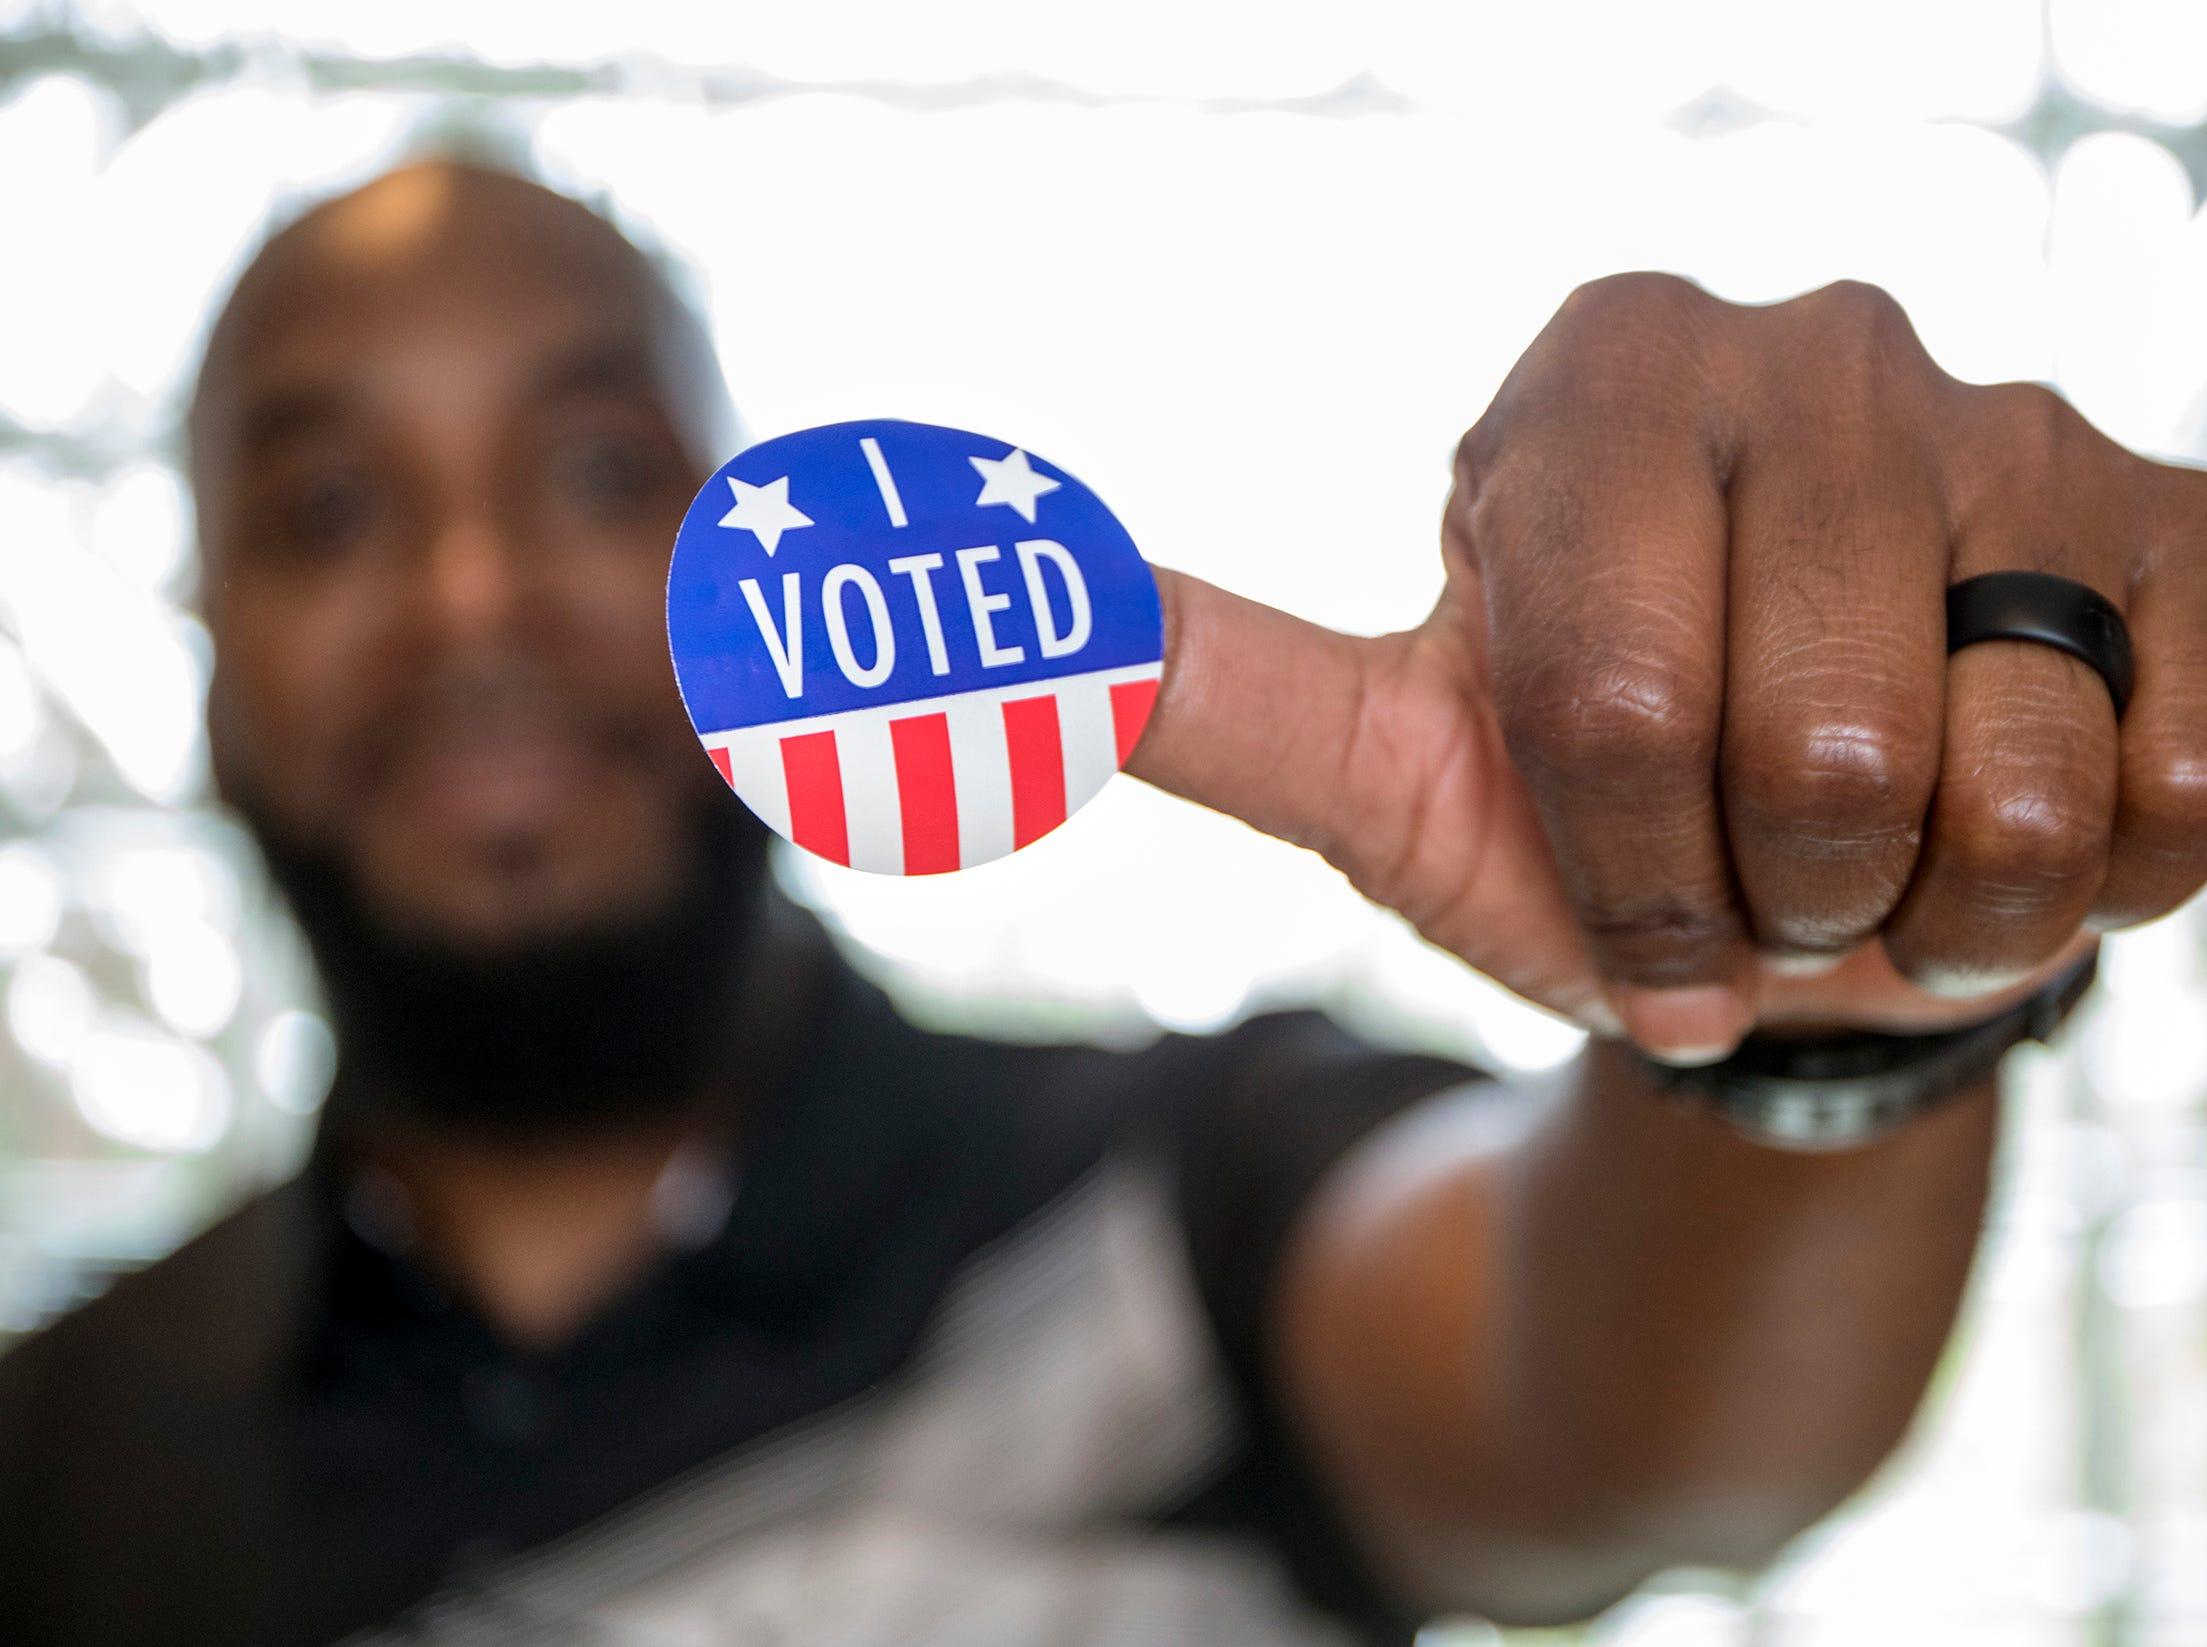 Sam Benford, 46 of Mt. Clemens holds up his sticker after voting at the Wilson Gymnasium polling location in Mt. Clemens, Mich., Tuesday, August 7, 2018.